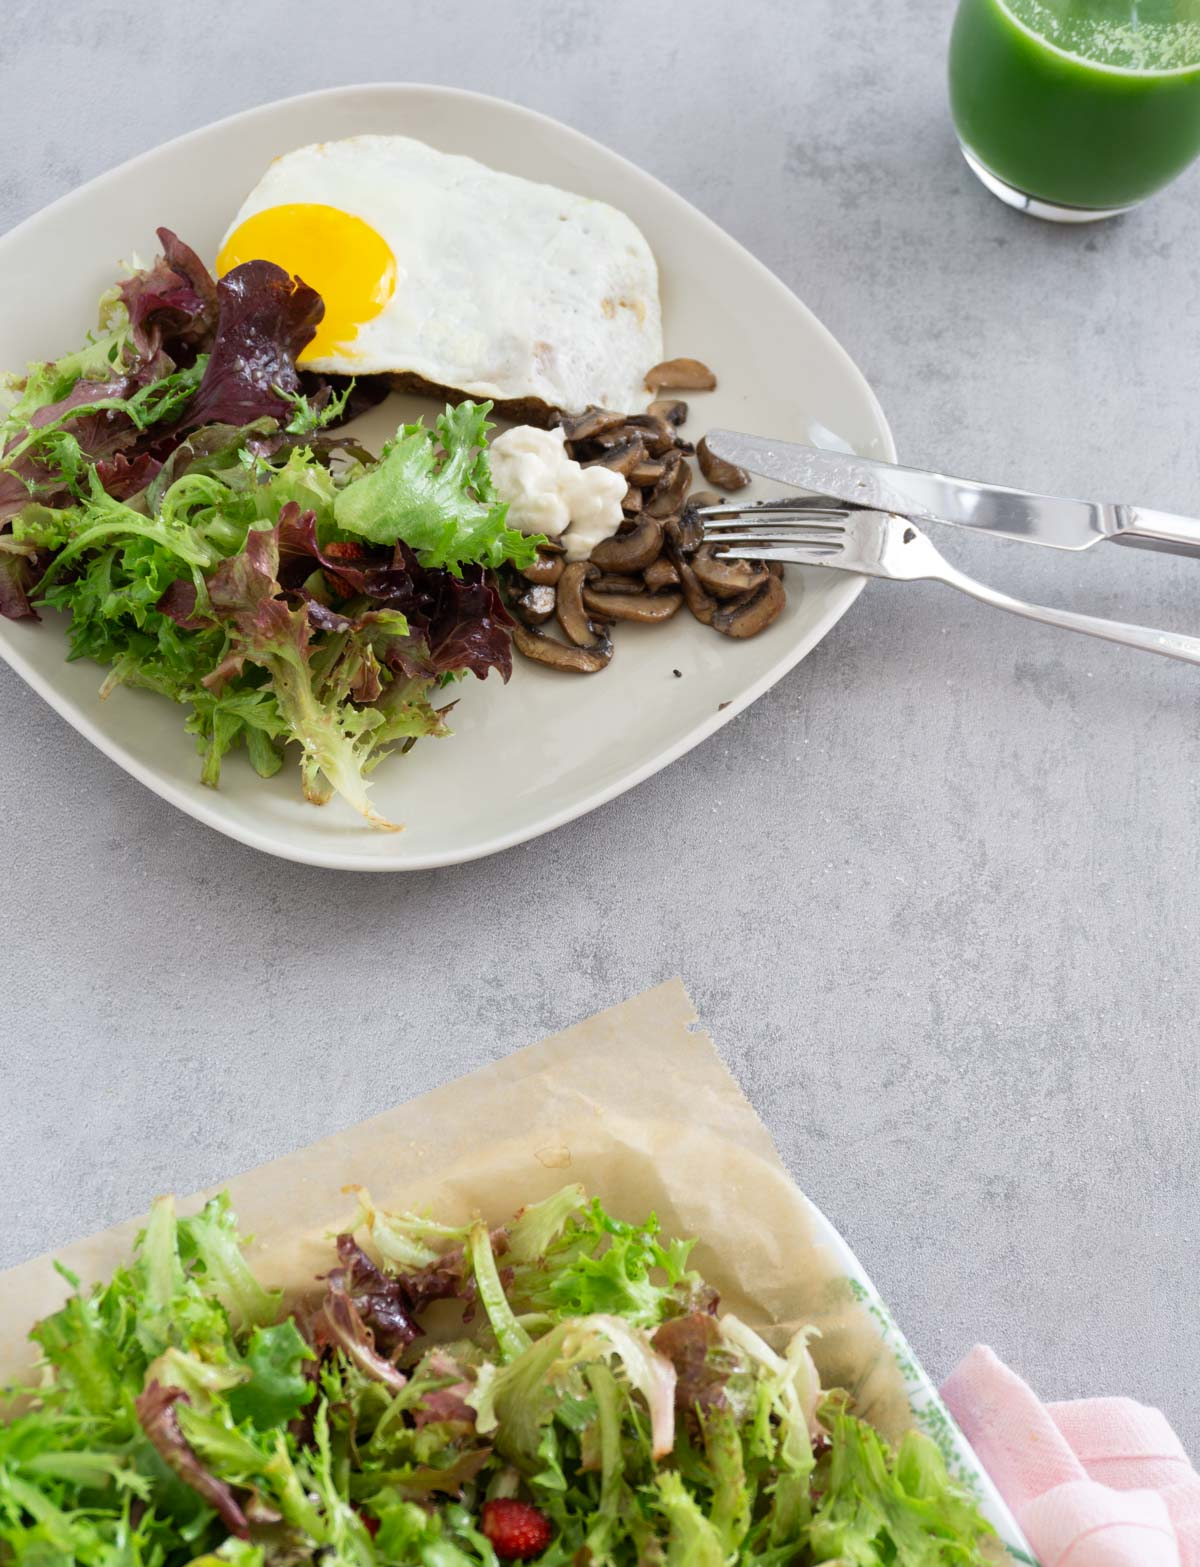 Breakfast brunch platter with mushrooms and garlic mayonnaise